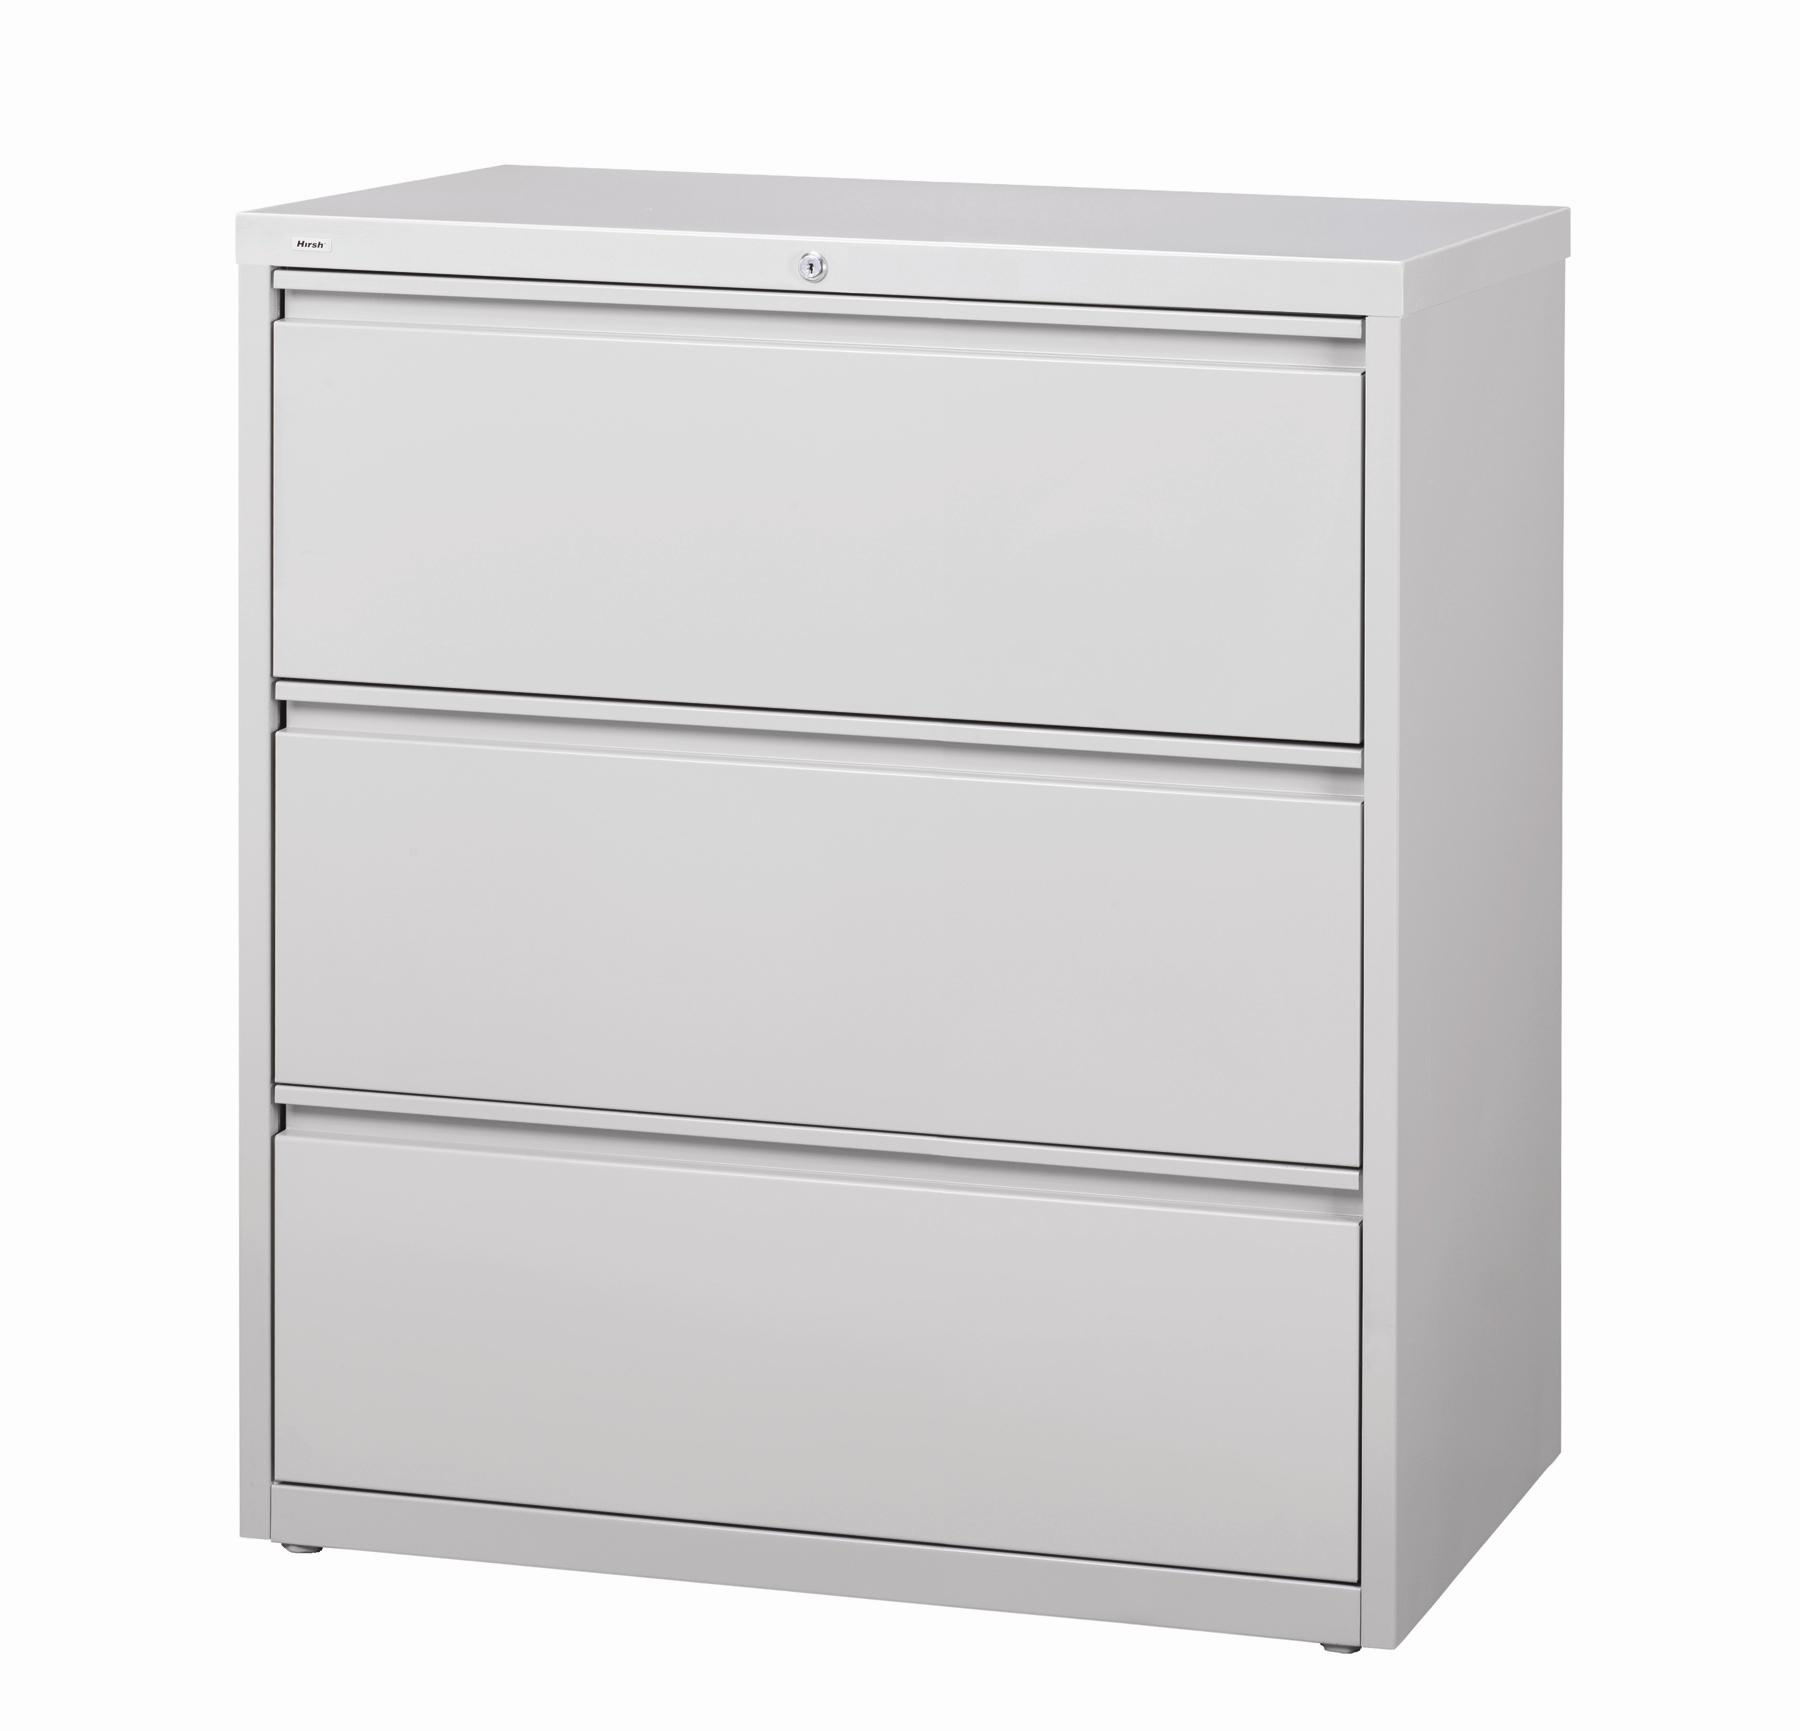 Hirsh Hl10000 Series 30 Inch Wide 3 Drawer Commercial